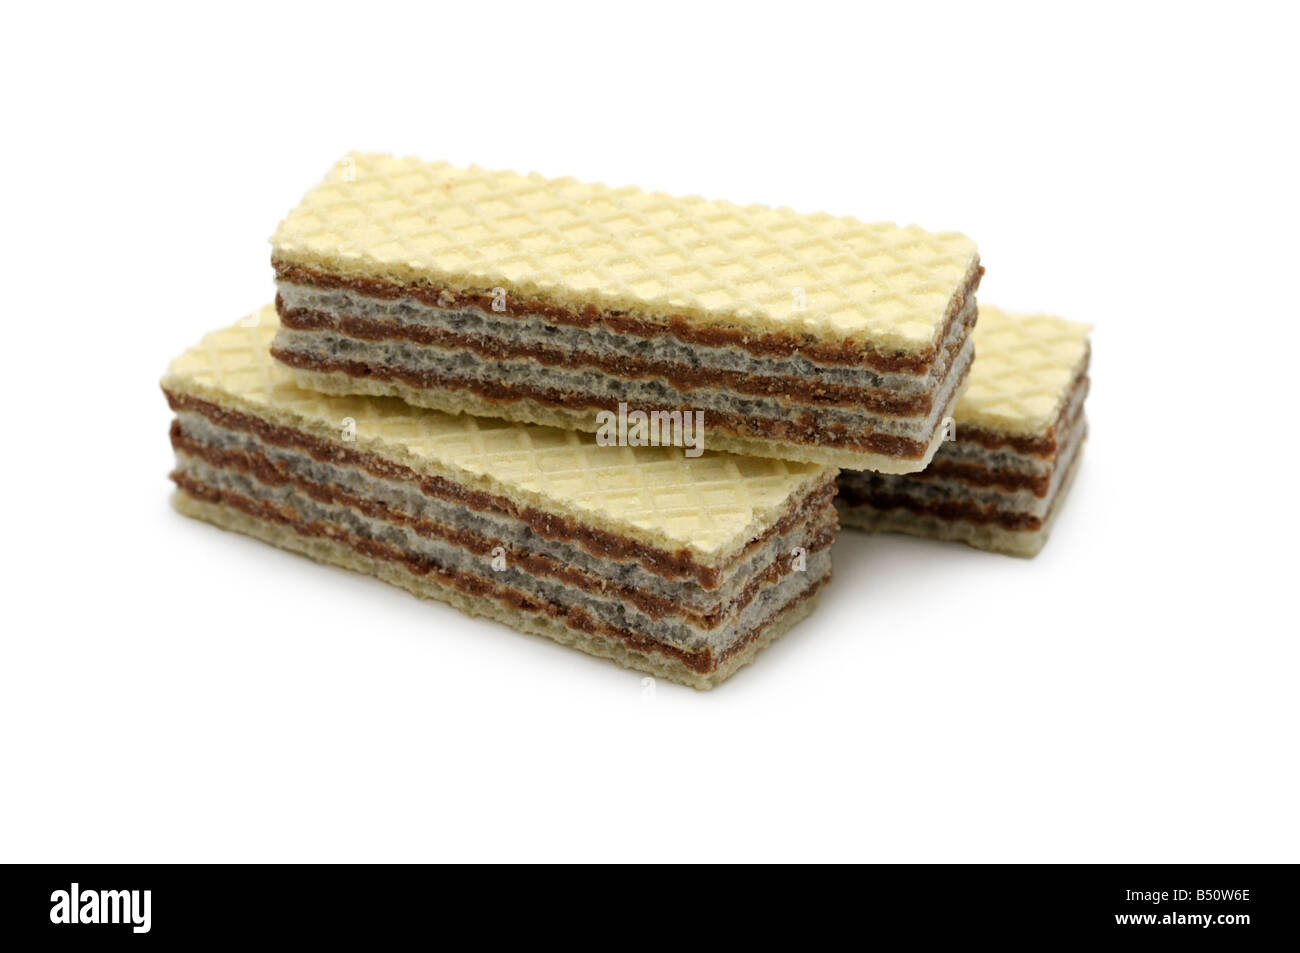 Wafers - Stock Image